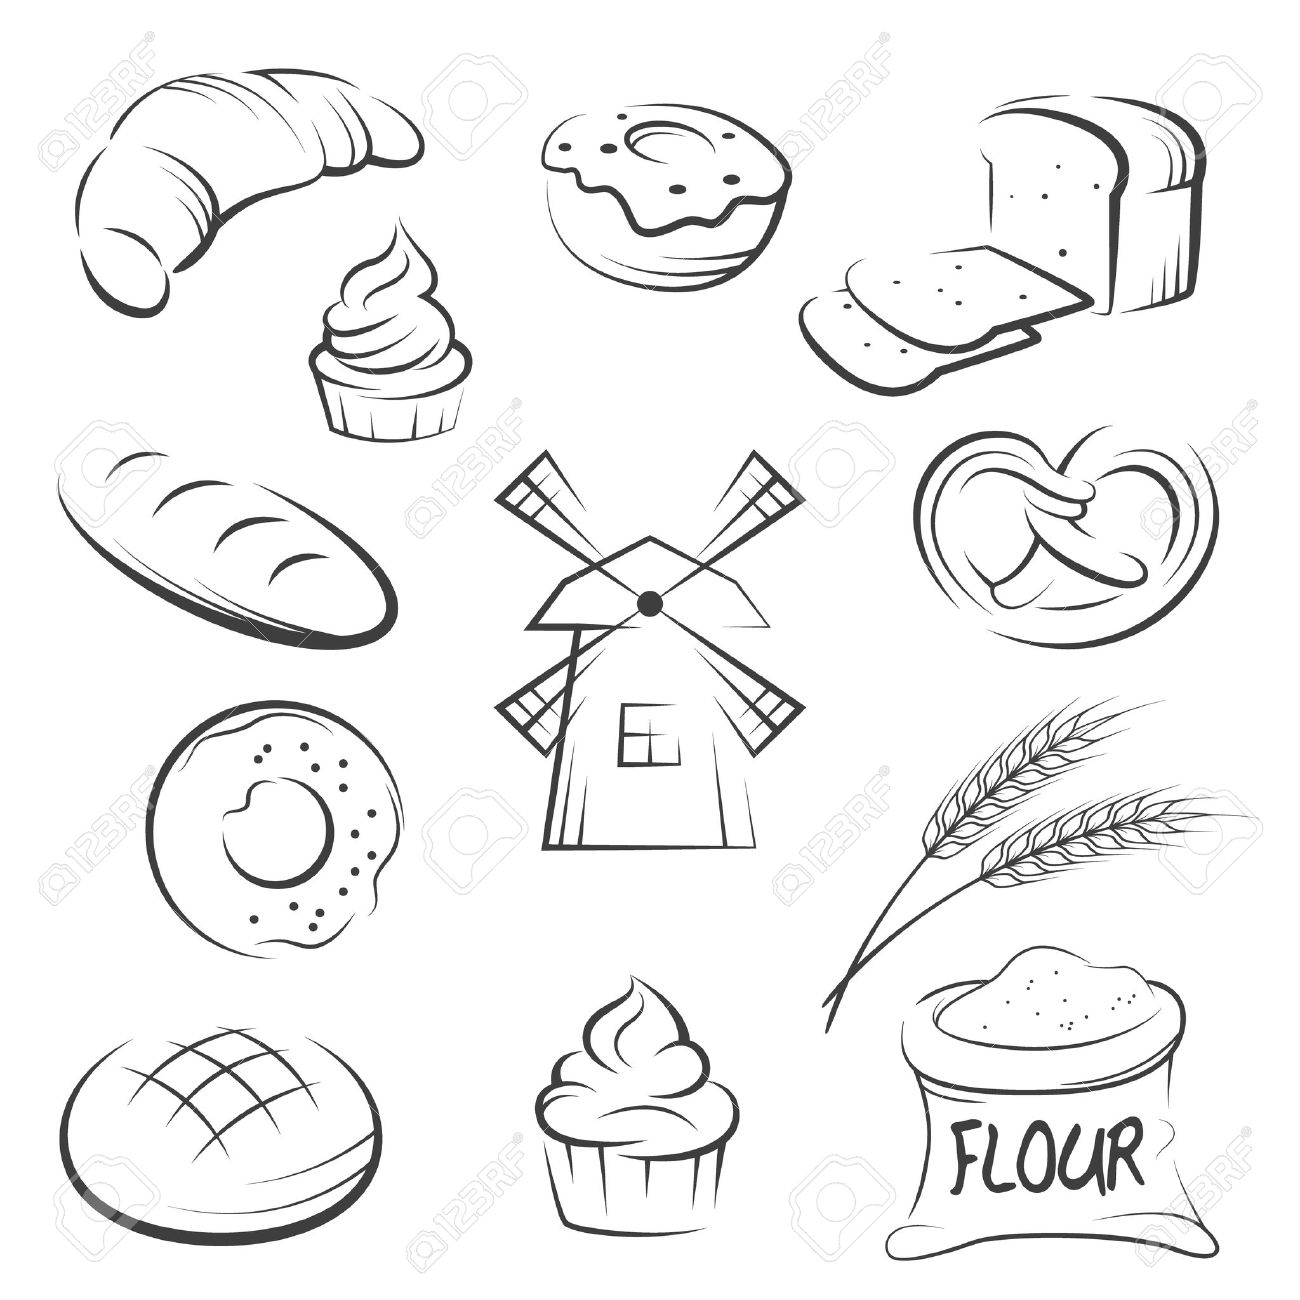 Set of hand drawing bakery icons. Vector illustration. - 35310211